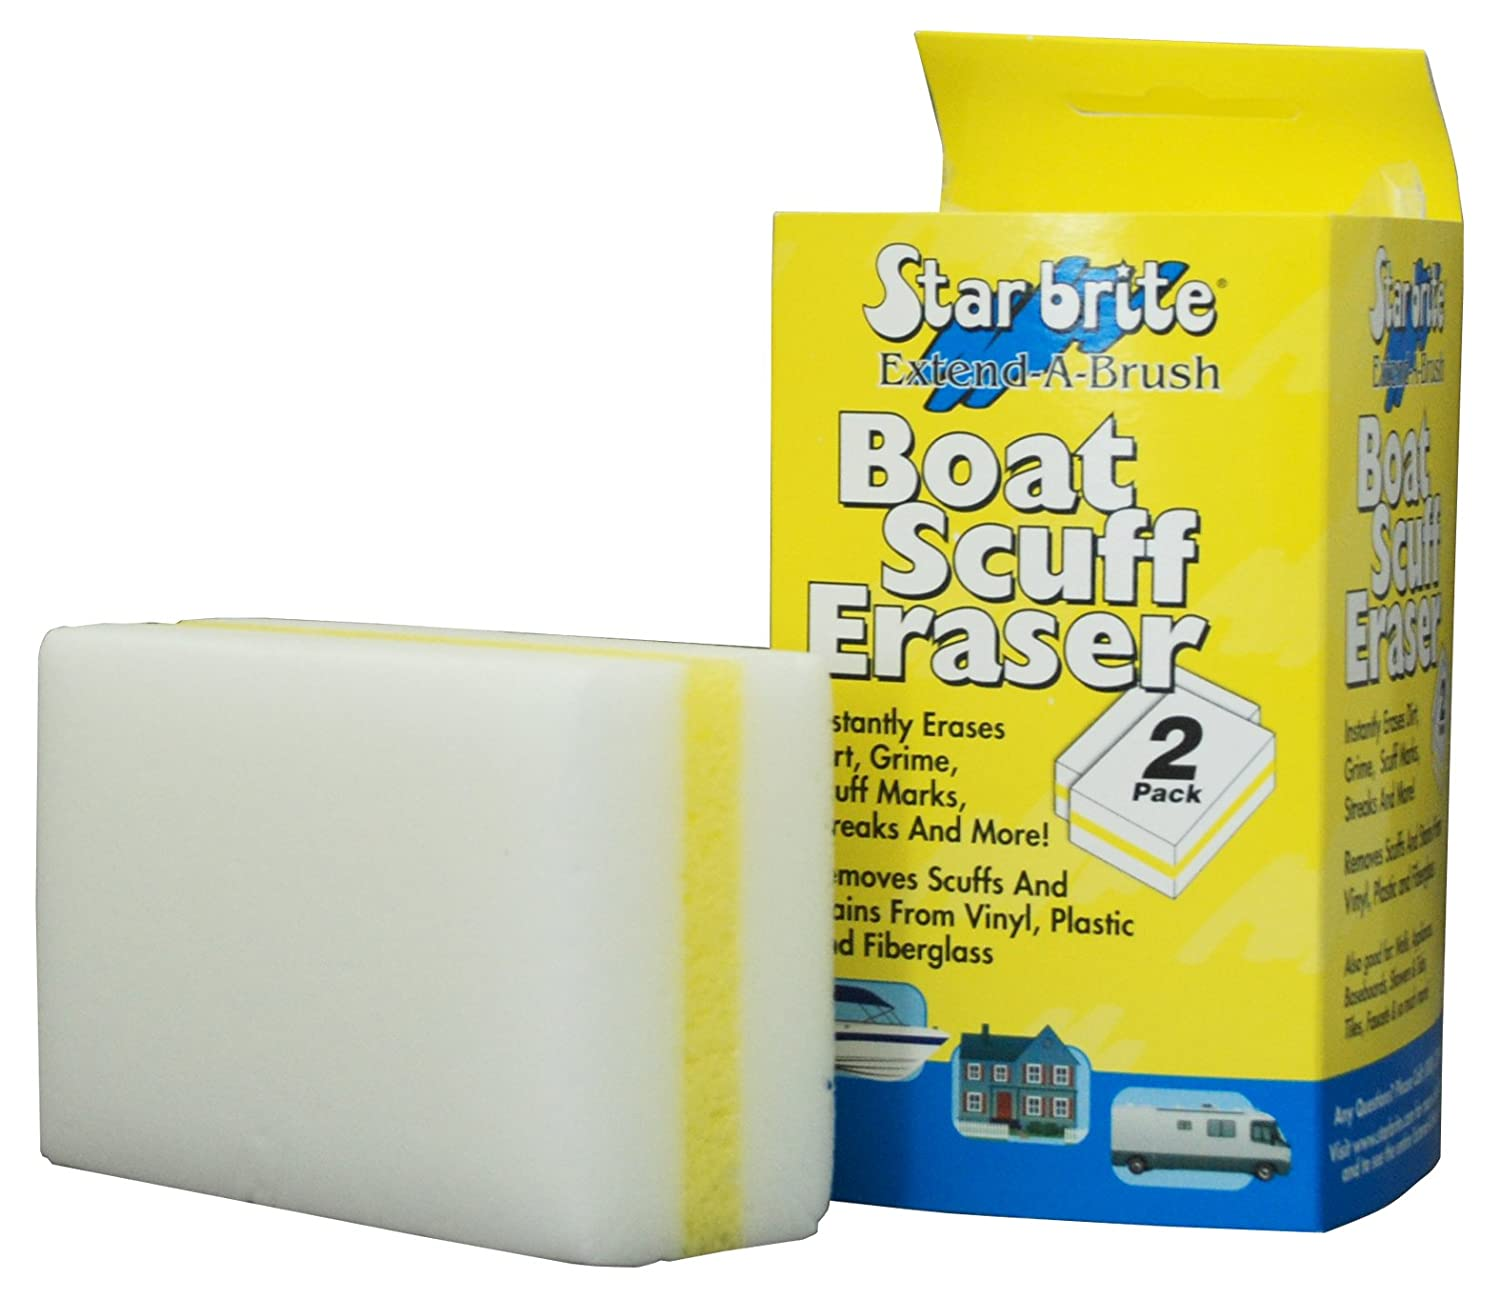 Star brite 041000 Boat Scuff Eraser-Poly Bag, Pack of 2